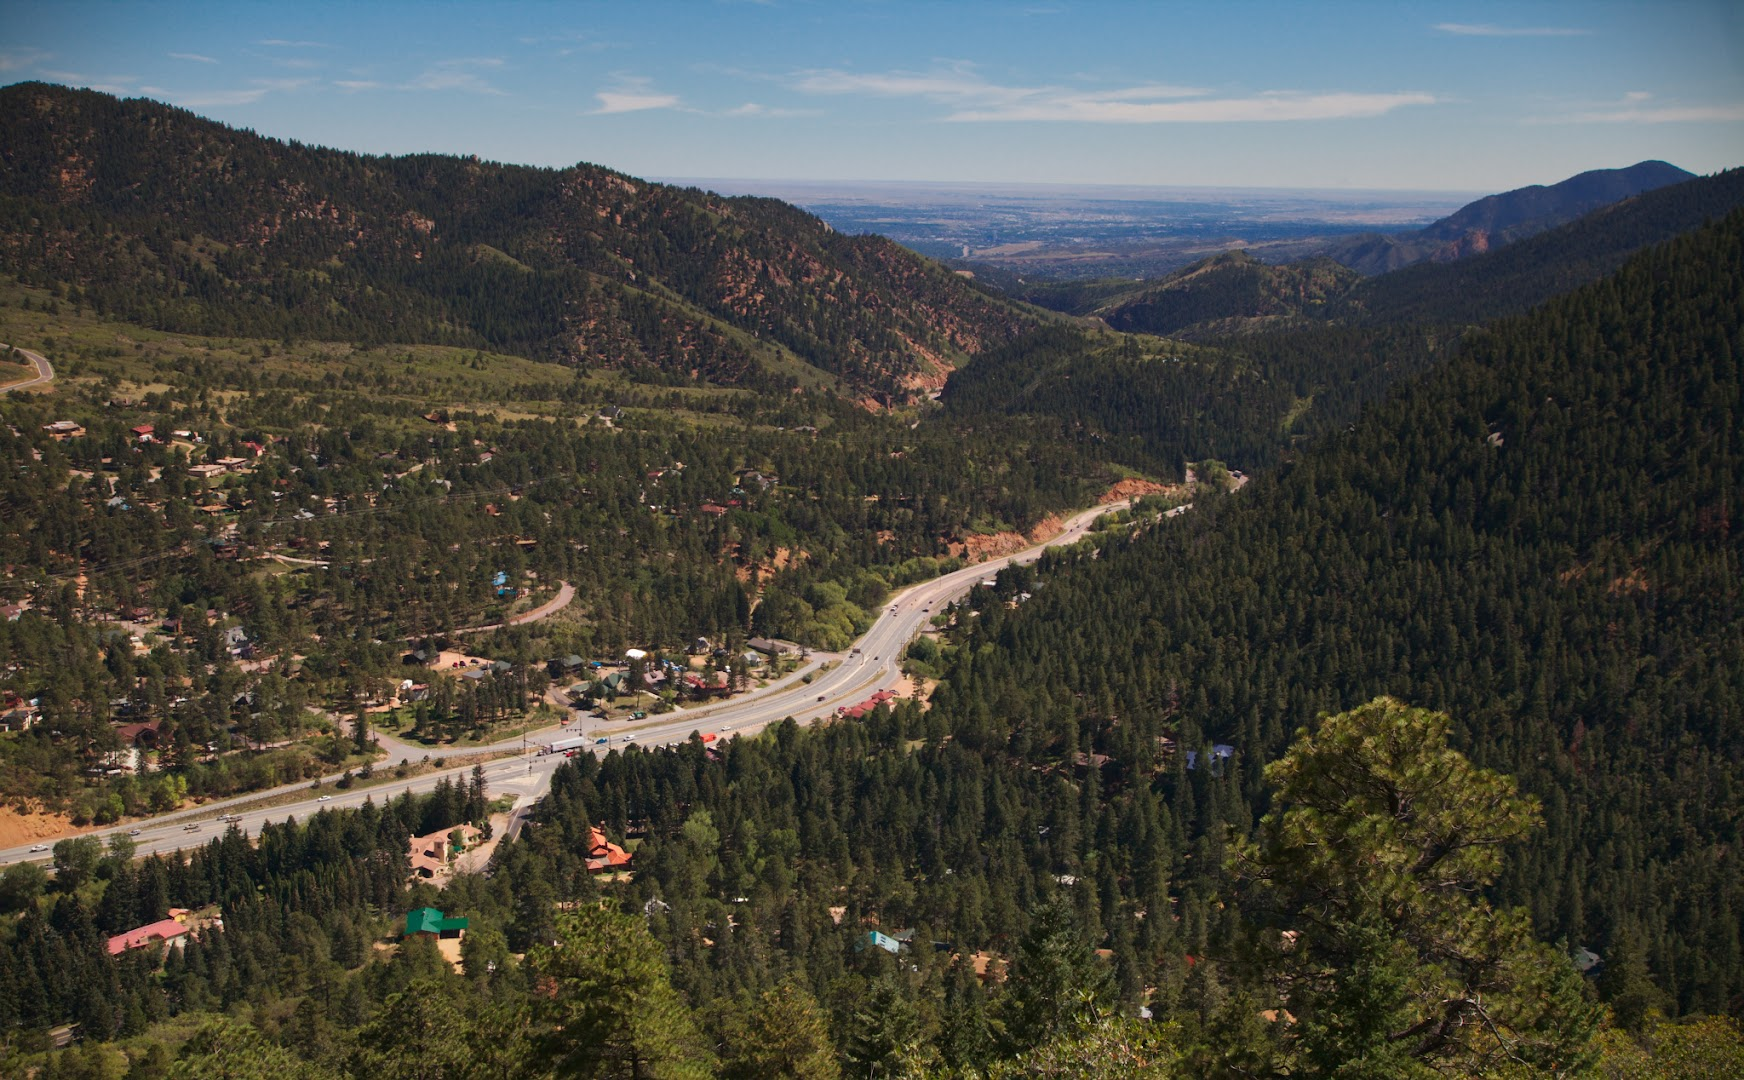 I-70 in the beginning of the Rockies follows ancient Indian path